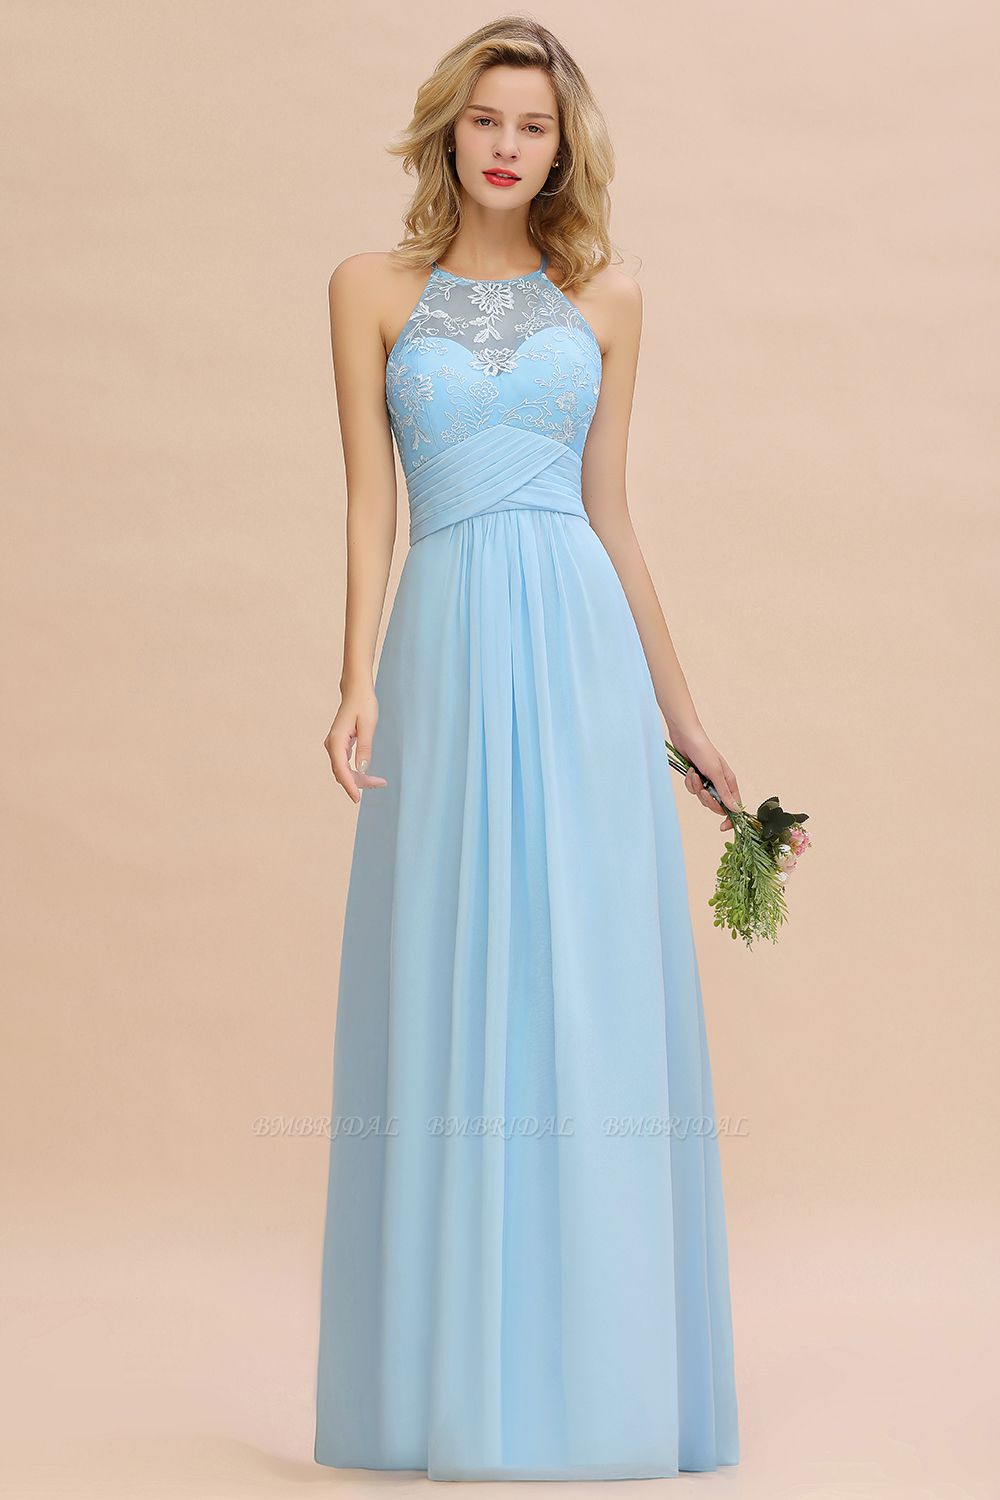 BMbridal Elegant Jewel Ruffle Affordable Chiffon Bridesmaid Dress with Appliques